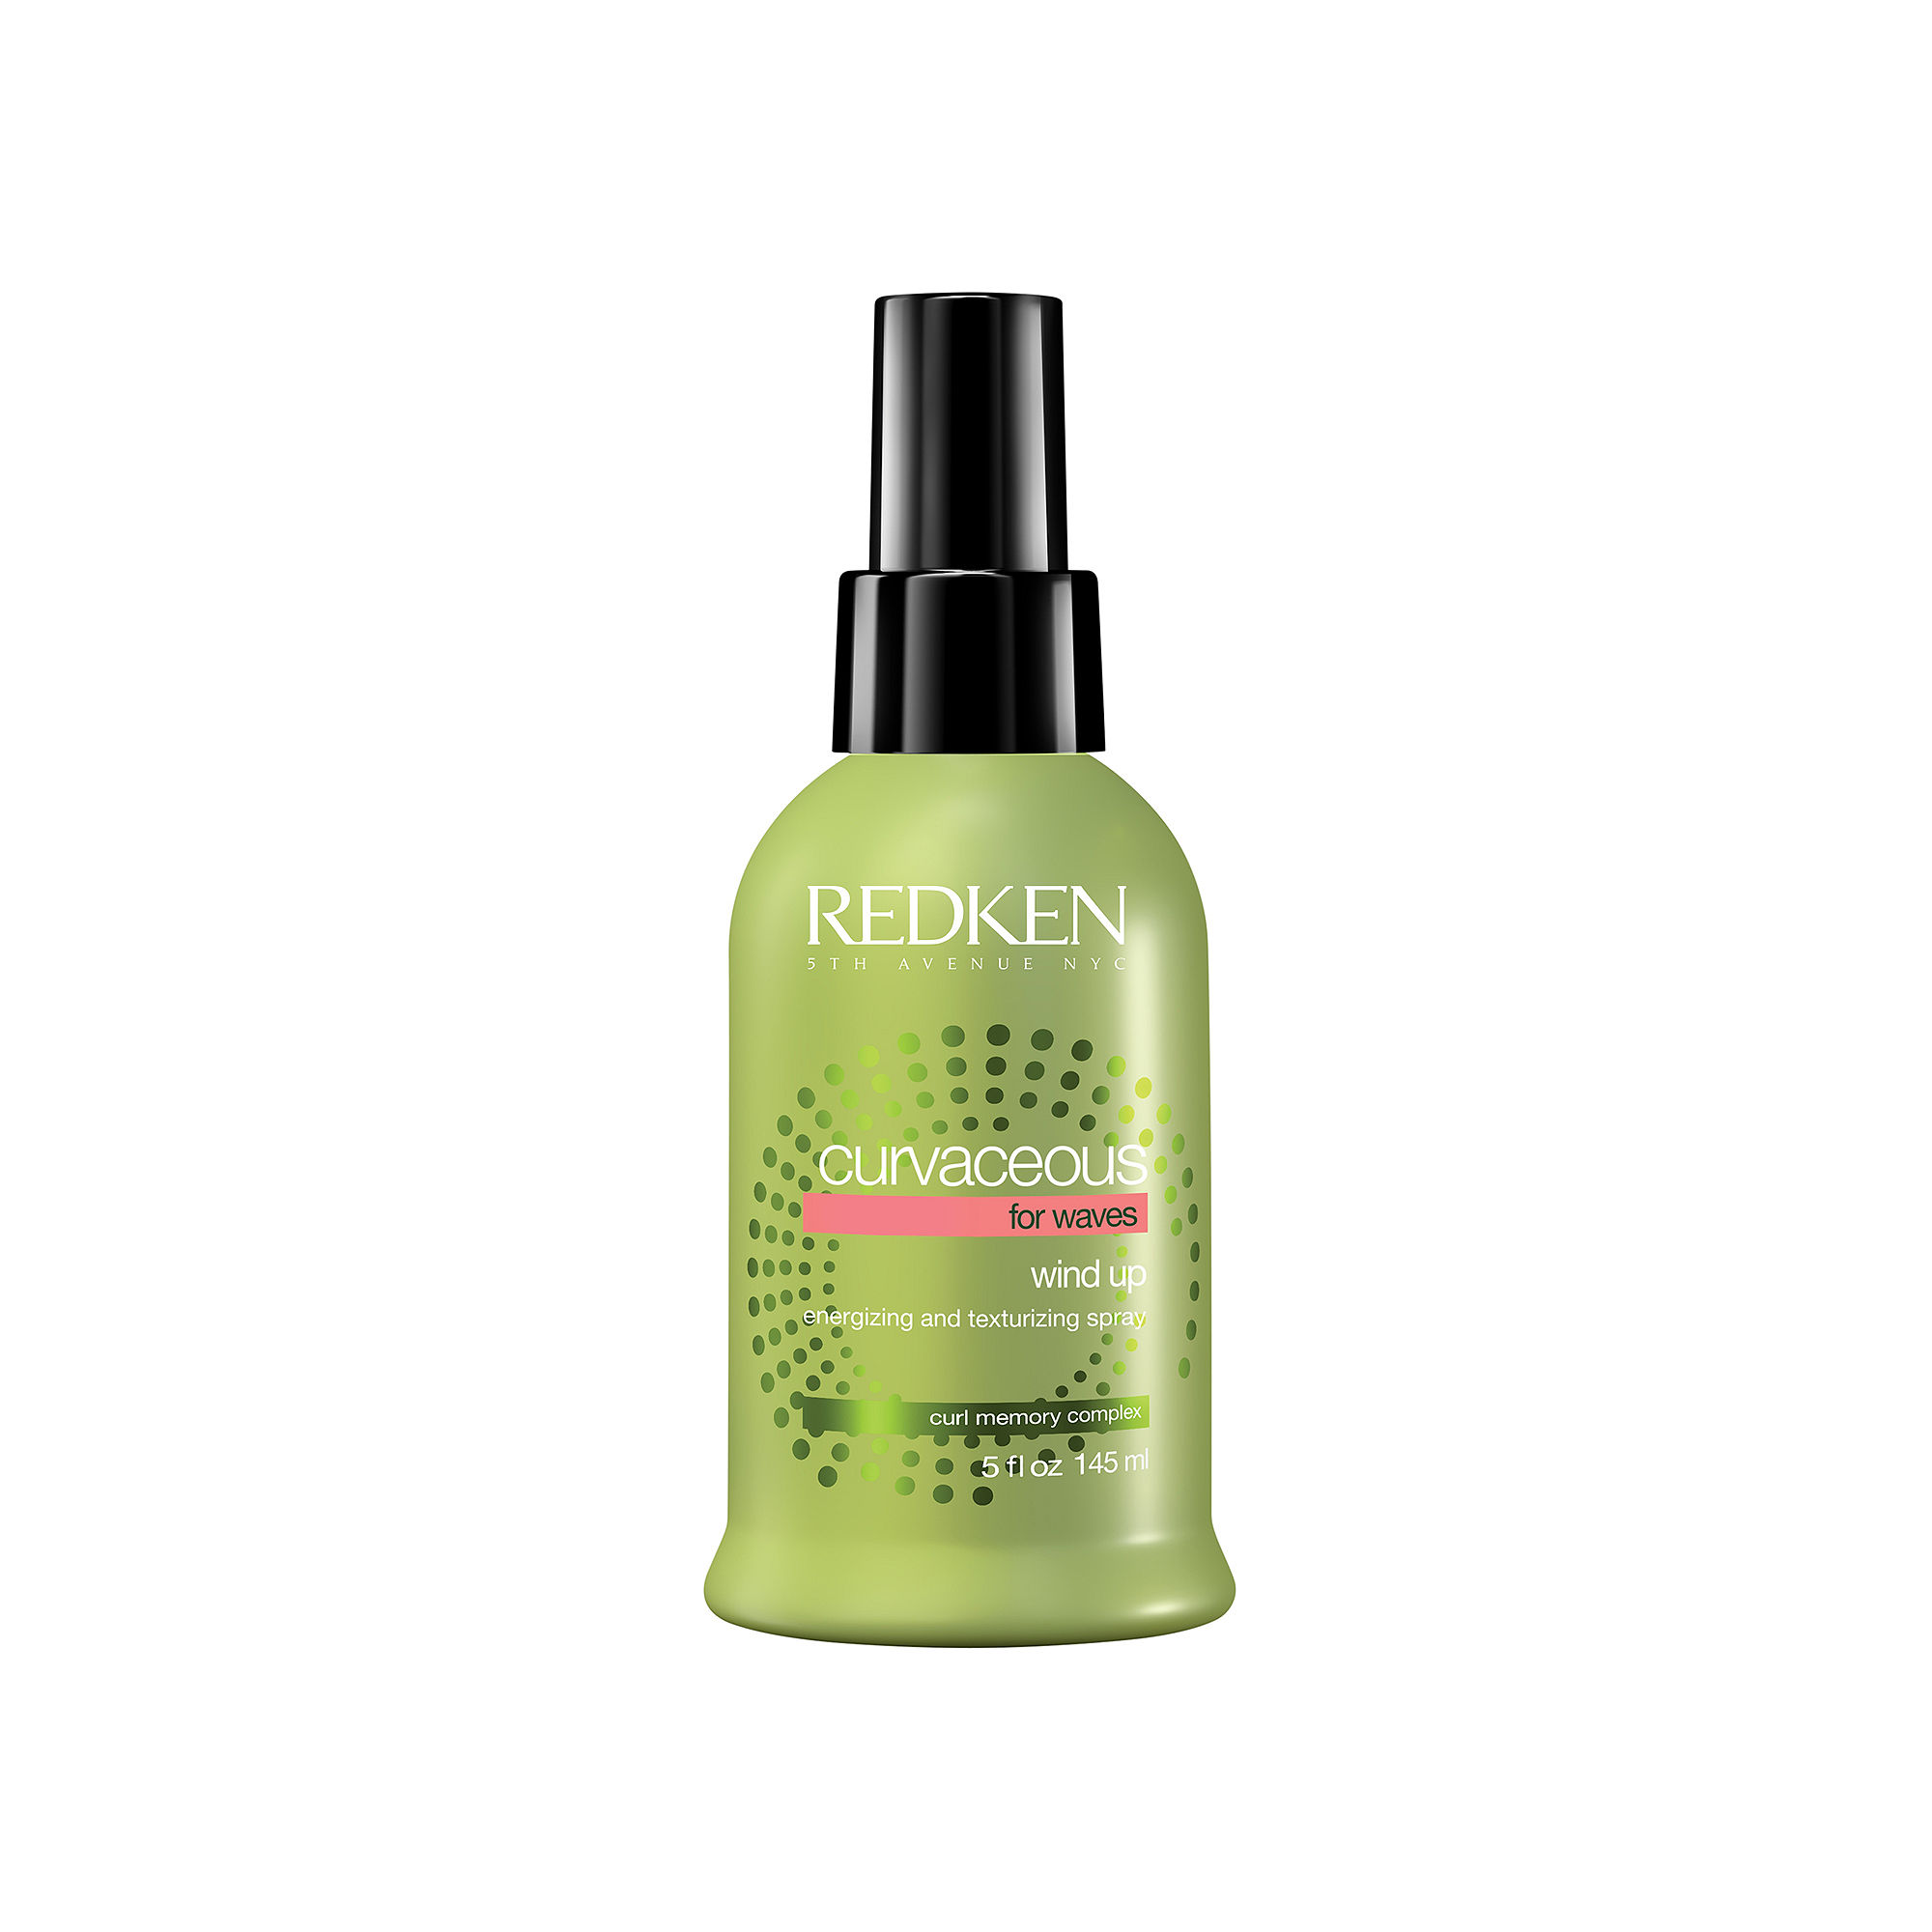 Redken Curvaceous Wind Up Curly & Wavy Hair Reactivating Spray